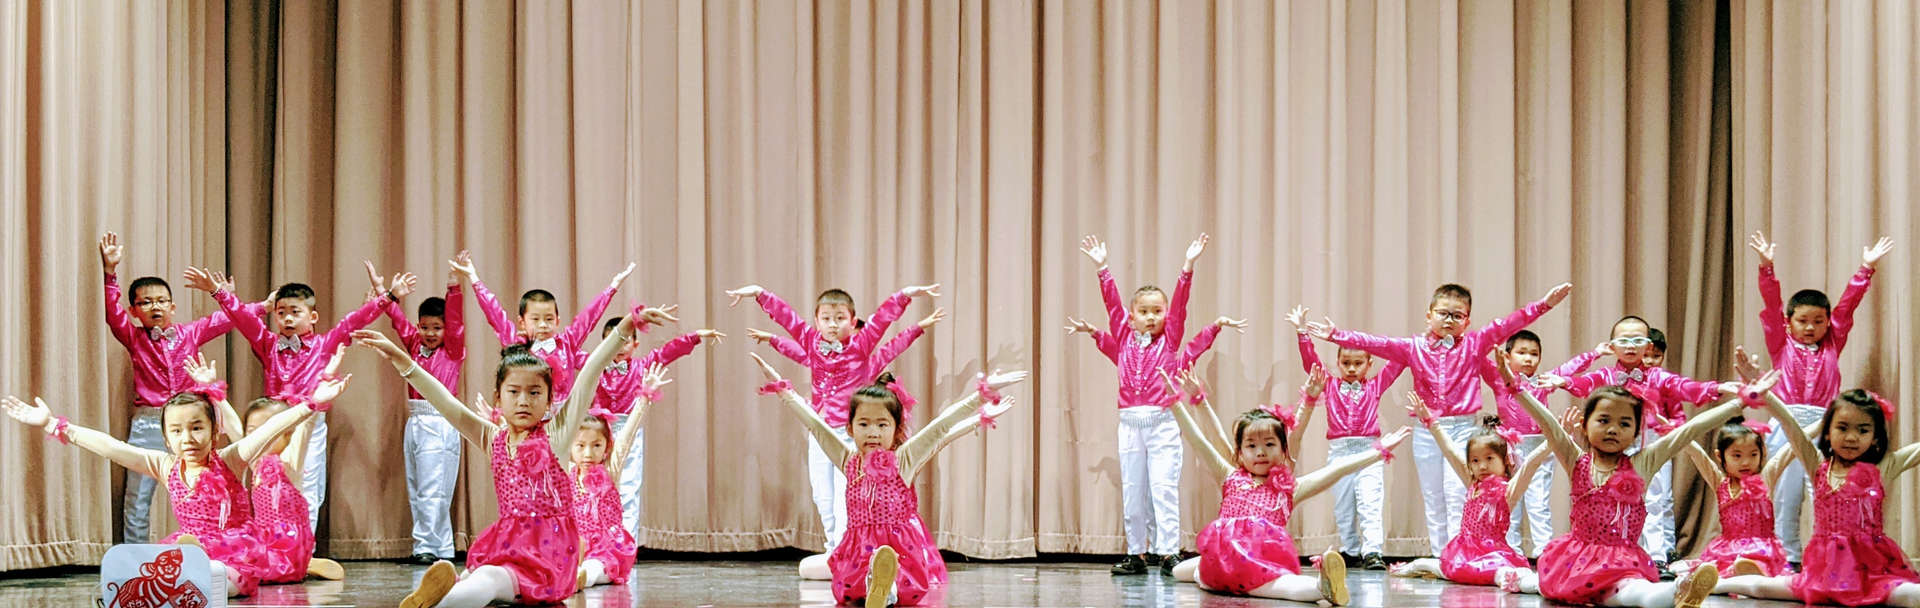 Ms. Ng's class performing a dance.